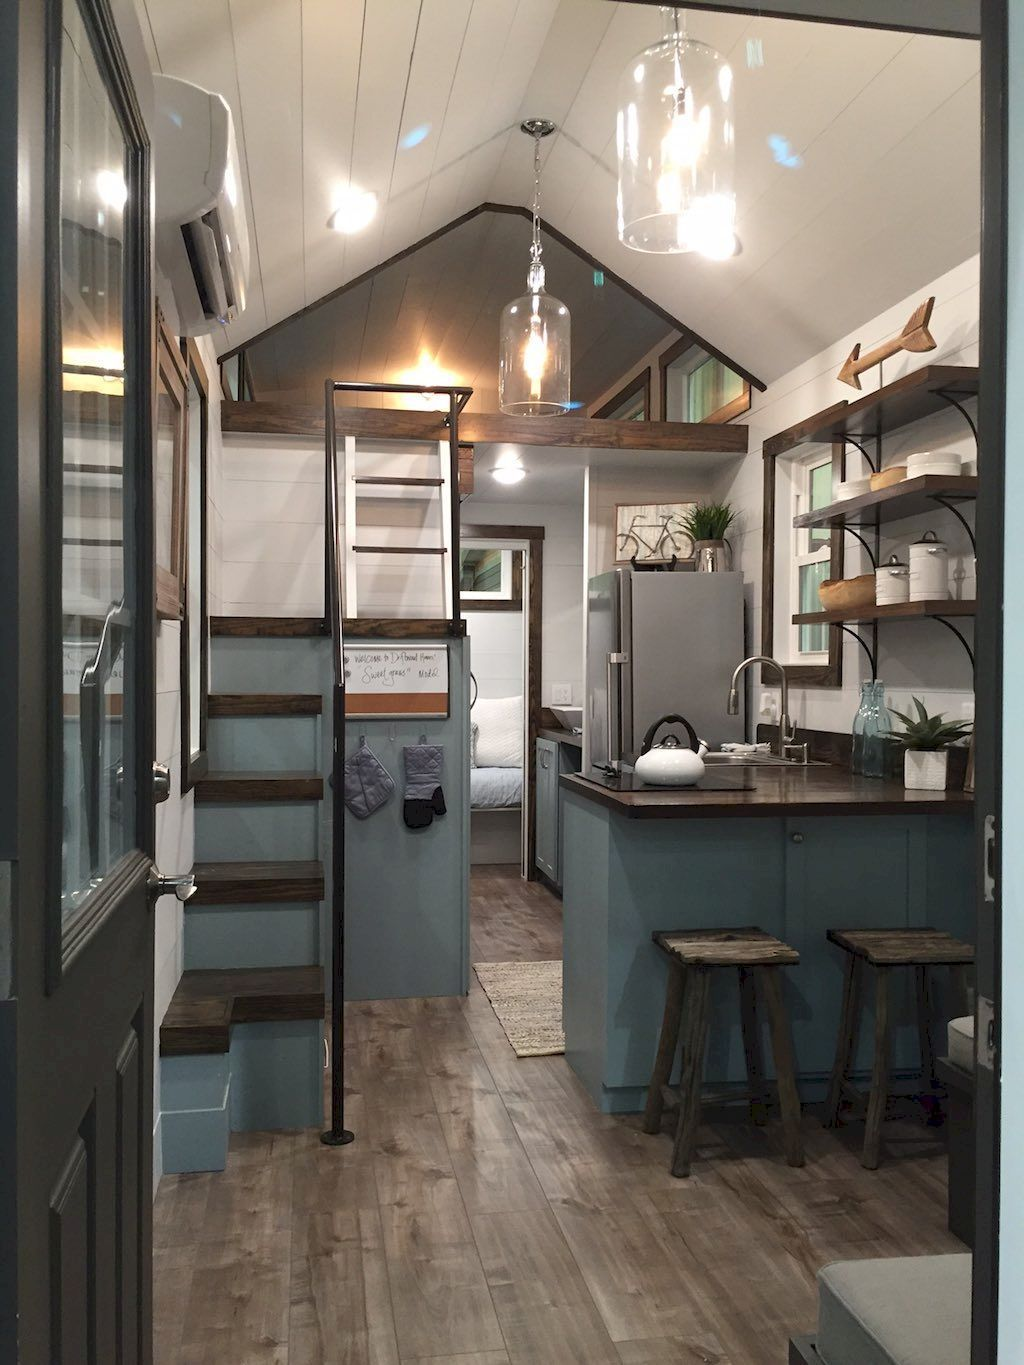 The Best Tiny House Interiors Plans We Could Actually Live In 32 Ideas Decoredo